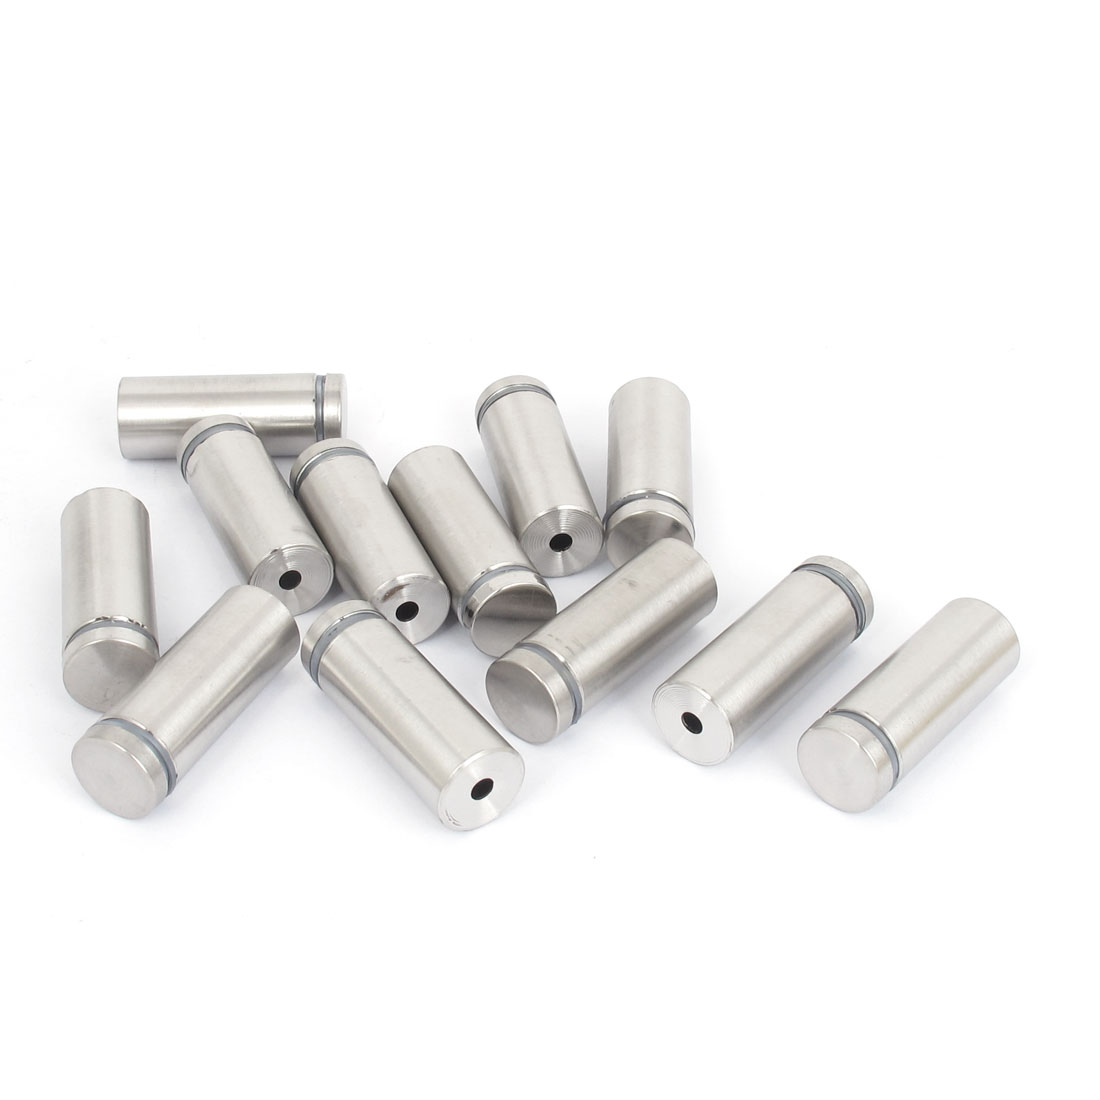 19mm x 50mm Stainless Steel Advertising Frameless Glass Standoff Pins 12pcs